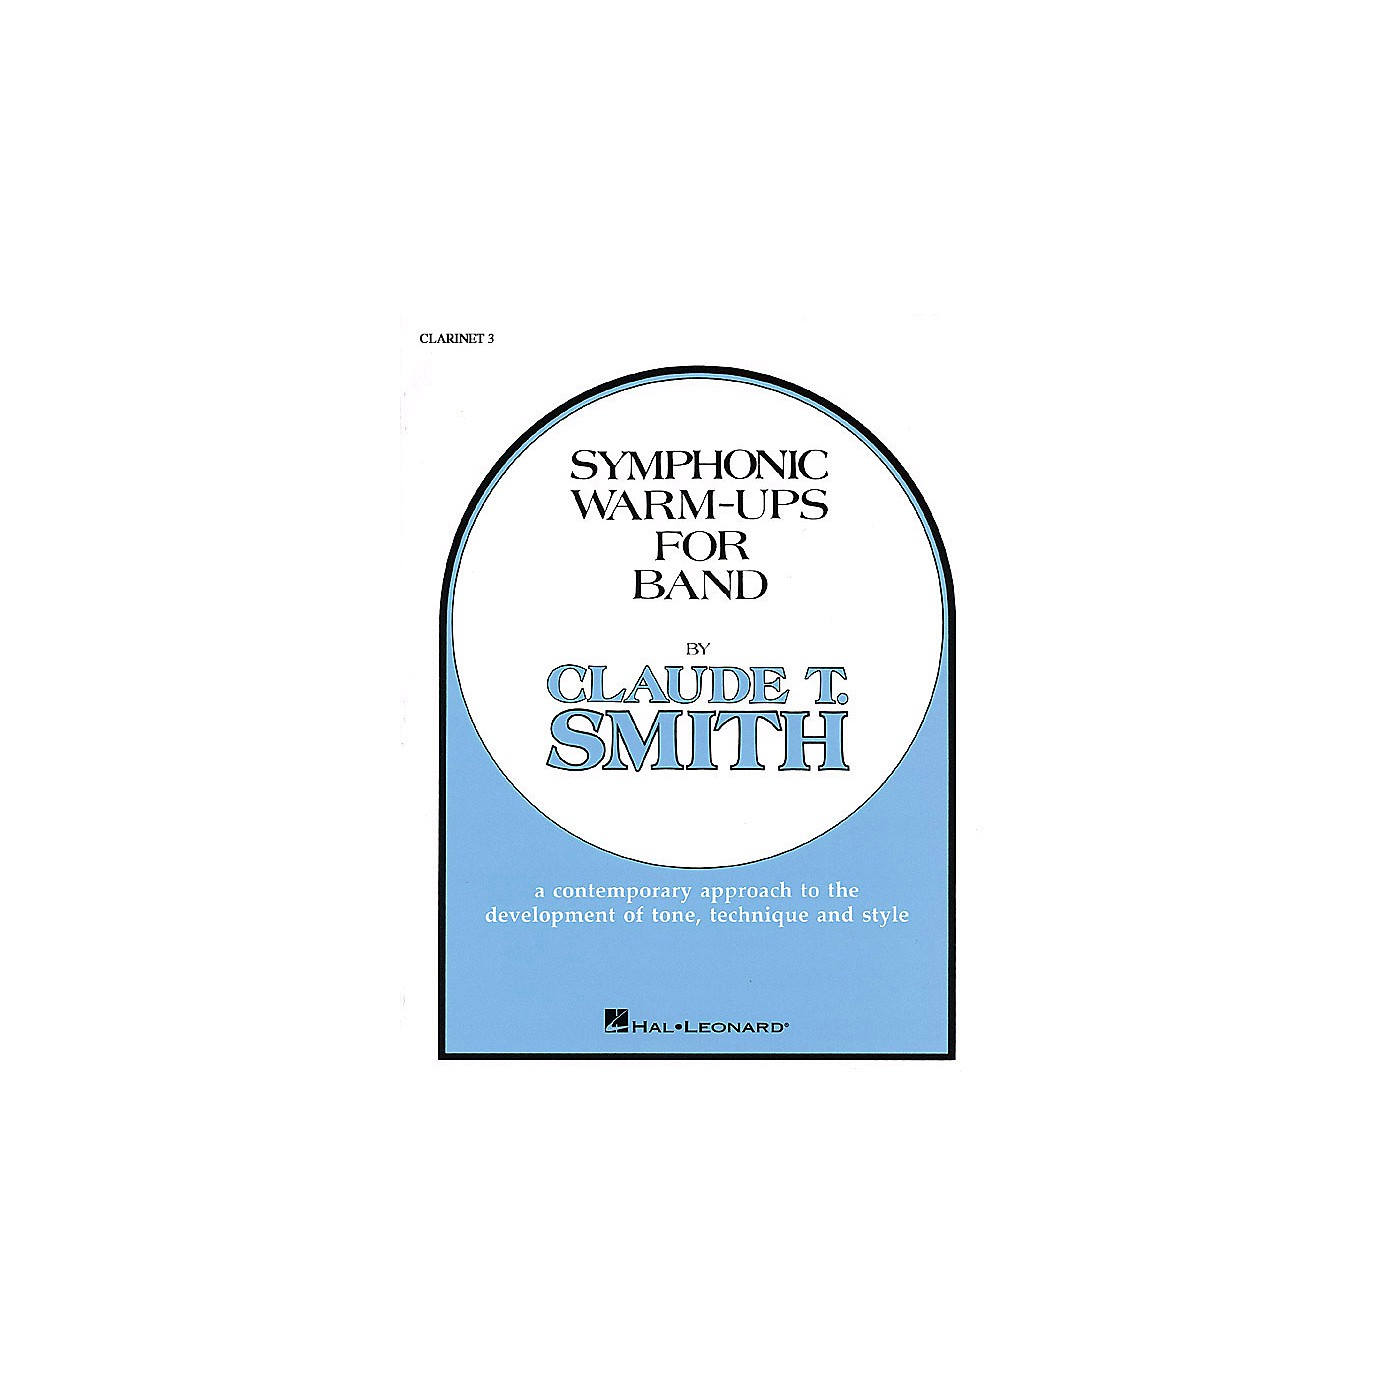 Hal Leonard Symphonic Warm-Ups for Band (Bb Clarinet 3) Concert Band Level 2-3 Composed by Claude T. Smith thumbnail